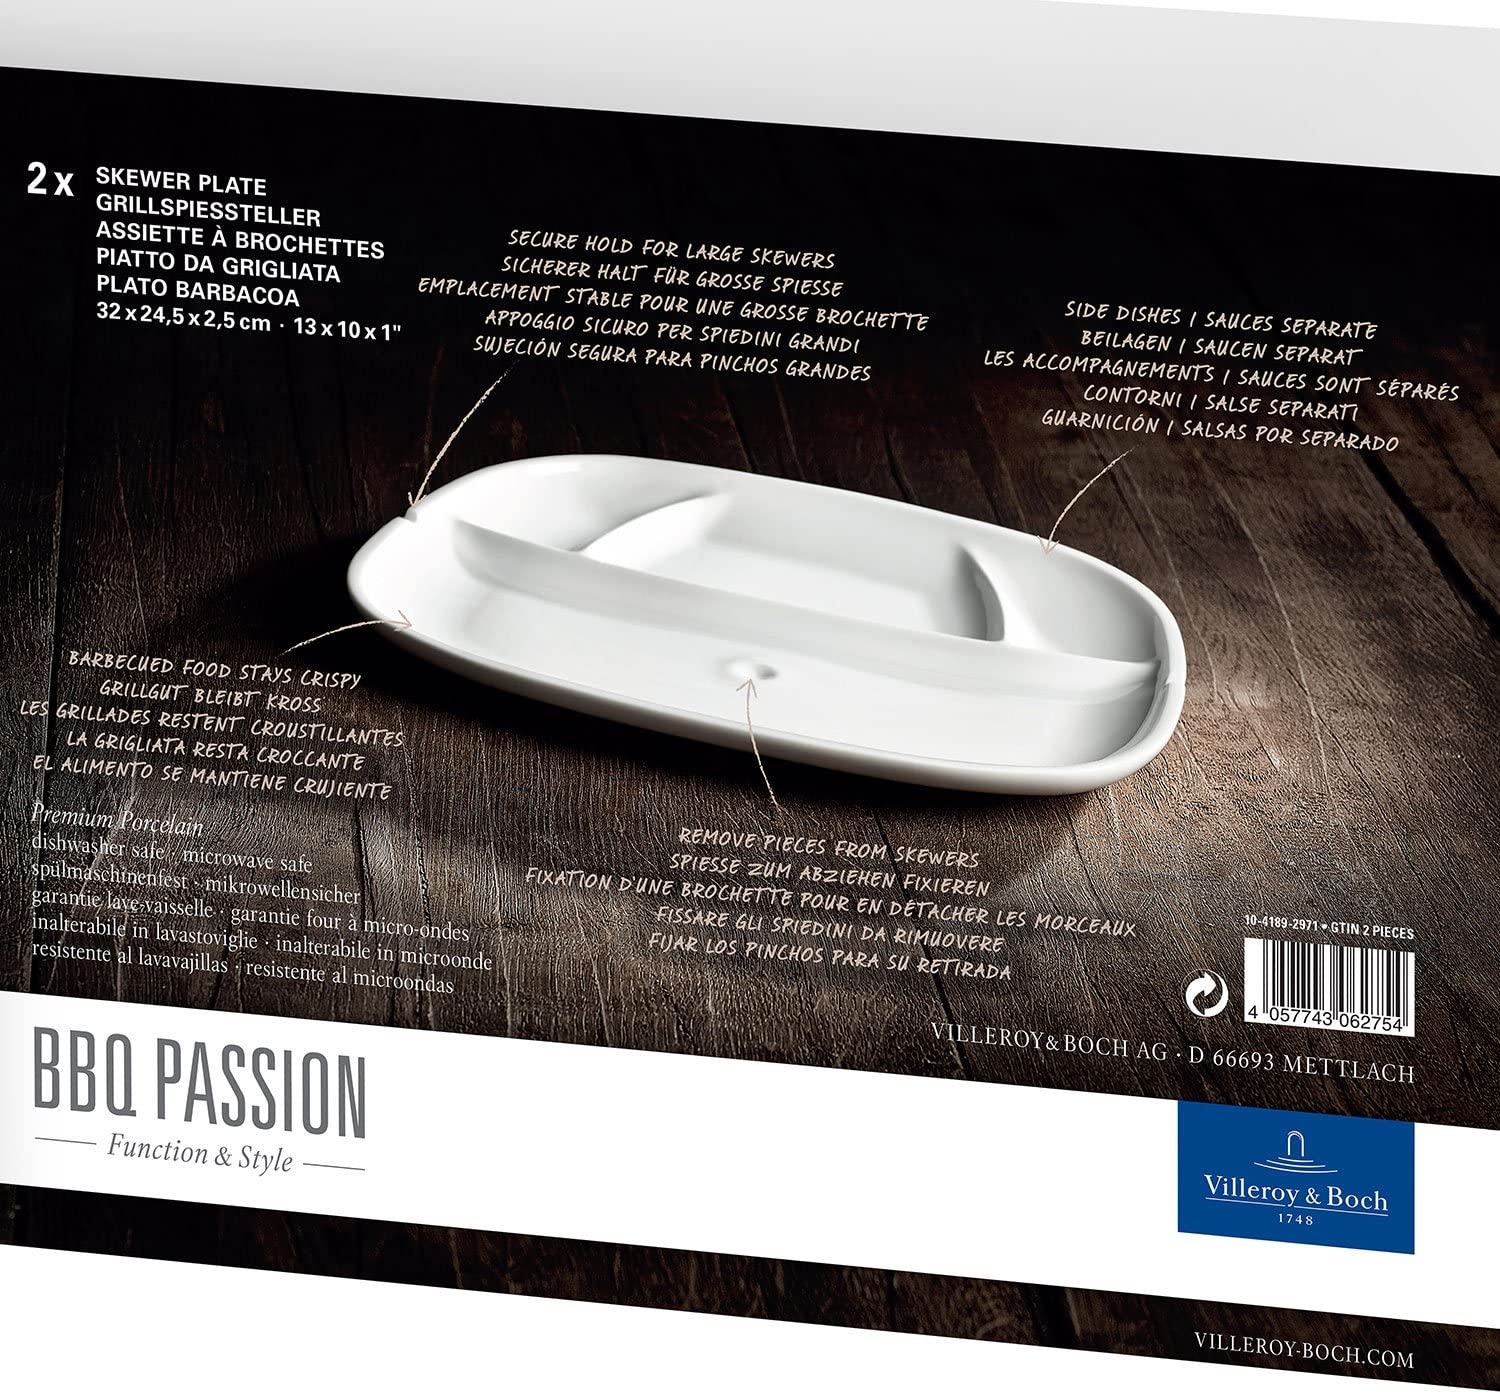 BBQ Passion Skewer Plate Set of 2 by Villeroy & Boch - Premium Porcelain - Made in Germany - Dishwasher and Microwave Safe - 12.5 x 9.5 Inches